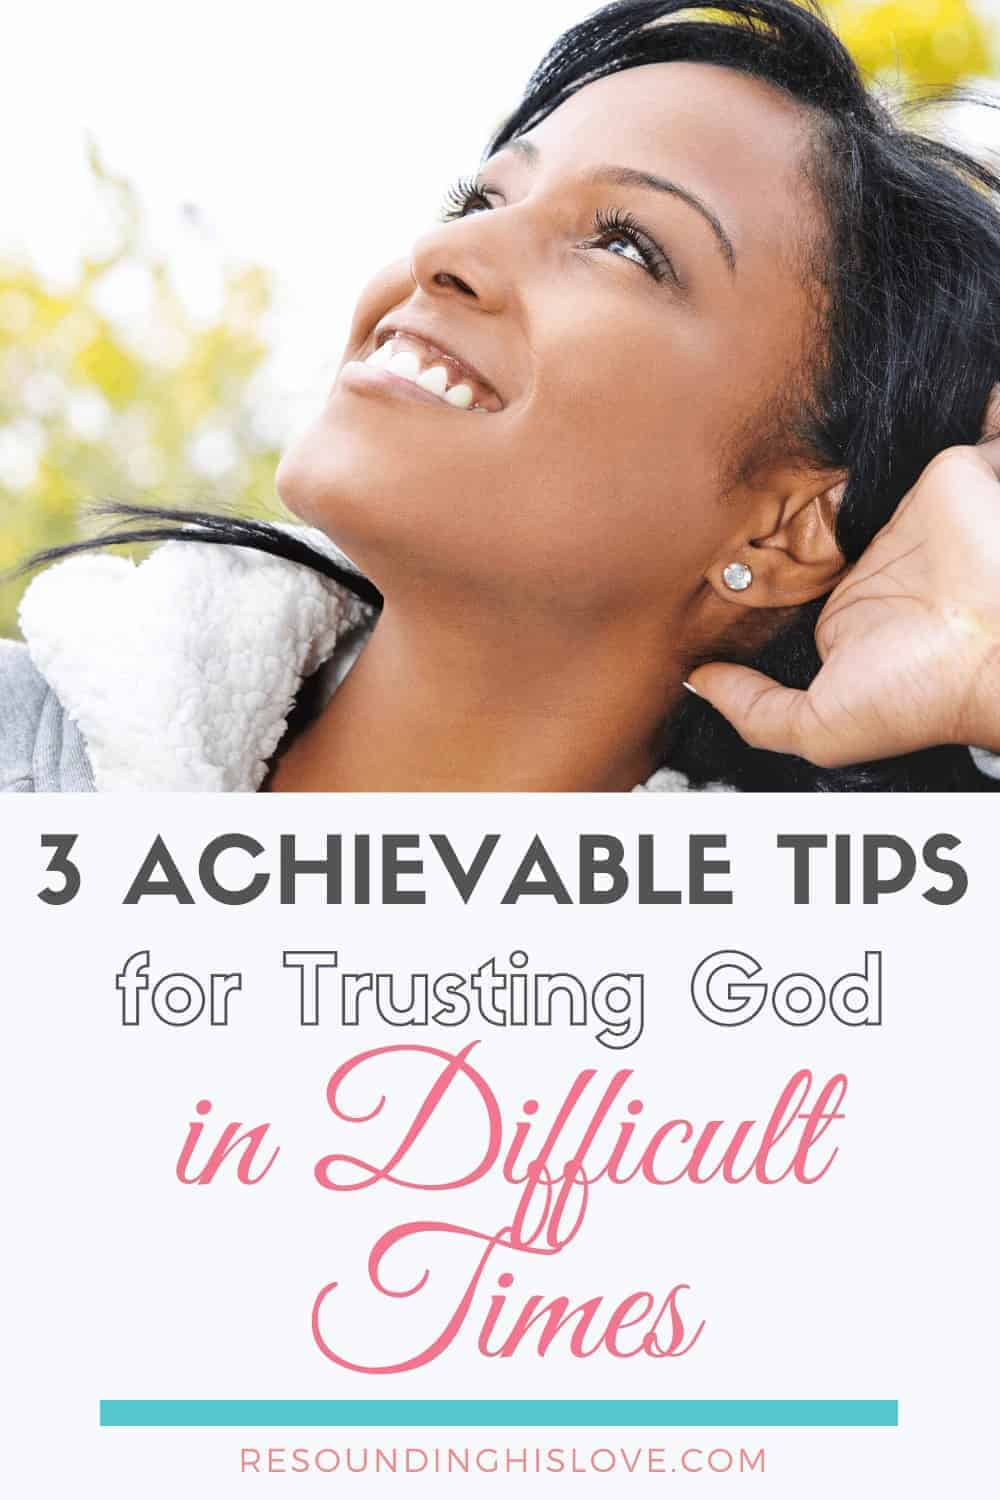 an image of a woman smiling looking towards the horizon with text reading 3 Achievable Tips for Trusting God in Difficult Times